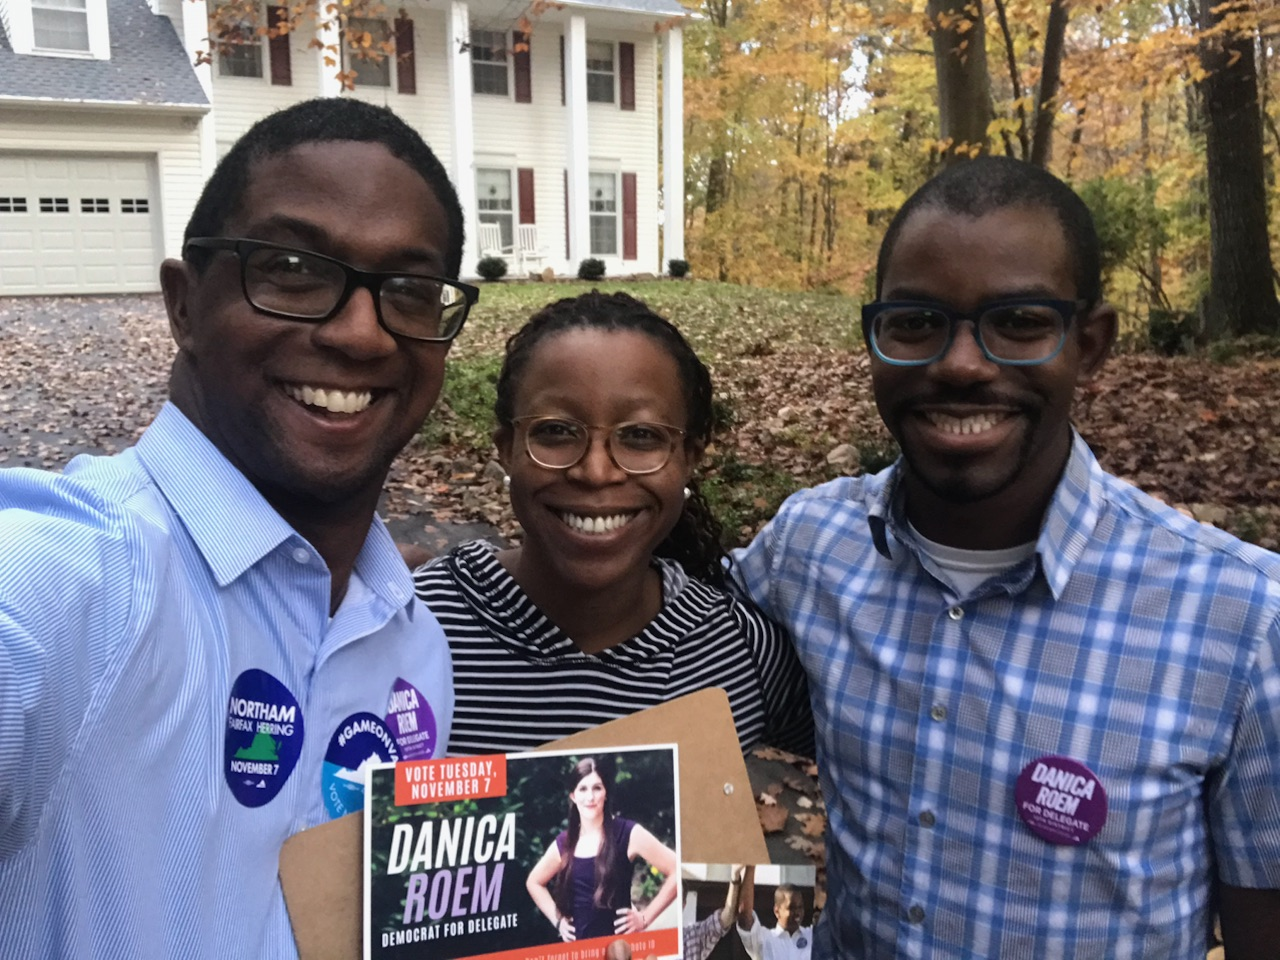 Victory staff knocking doors for candidate Danica Roem before her June primary.